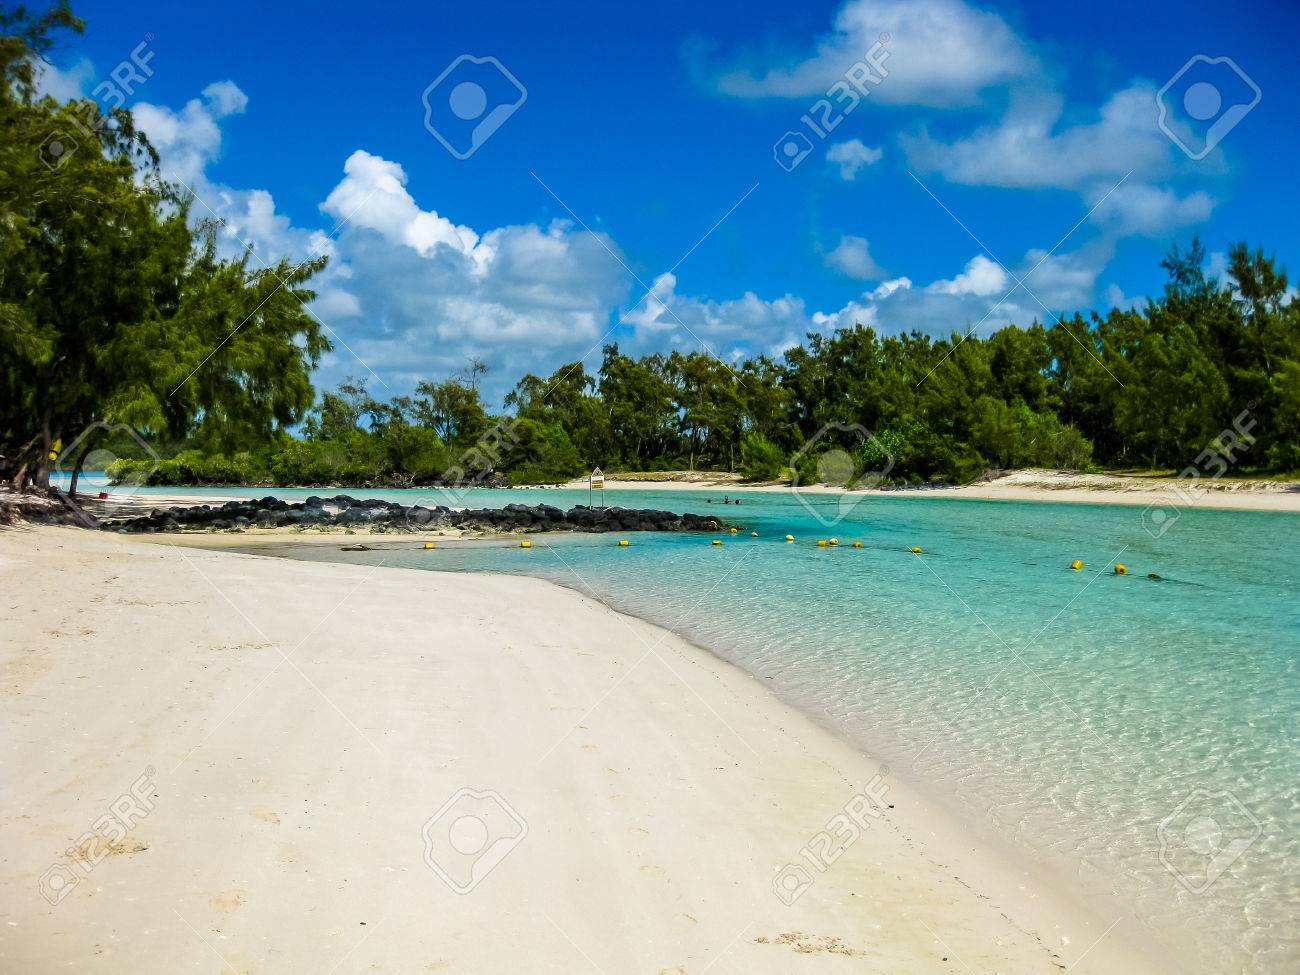 The spectacular and idyllic white beach of Deer Island near Bellemare, located on the east coast of Mauritius, one of the main attractions. - 47559338